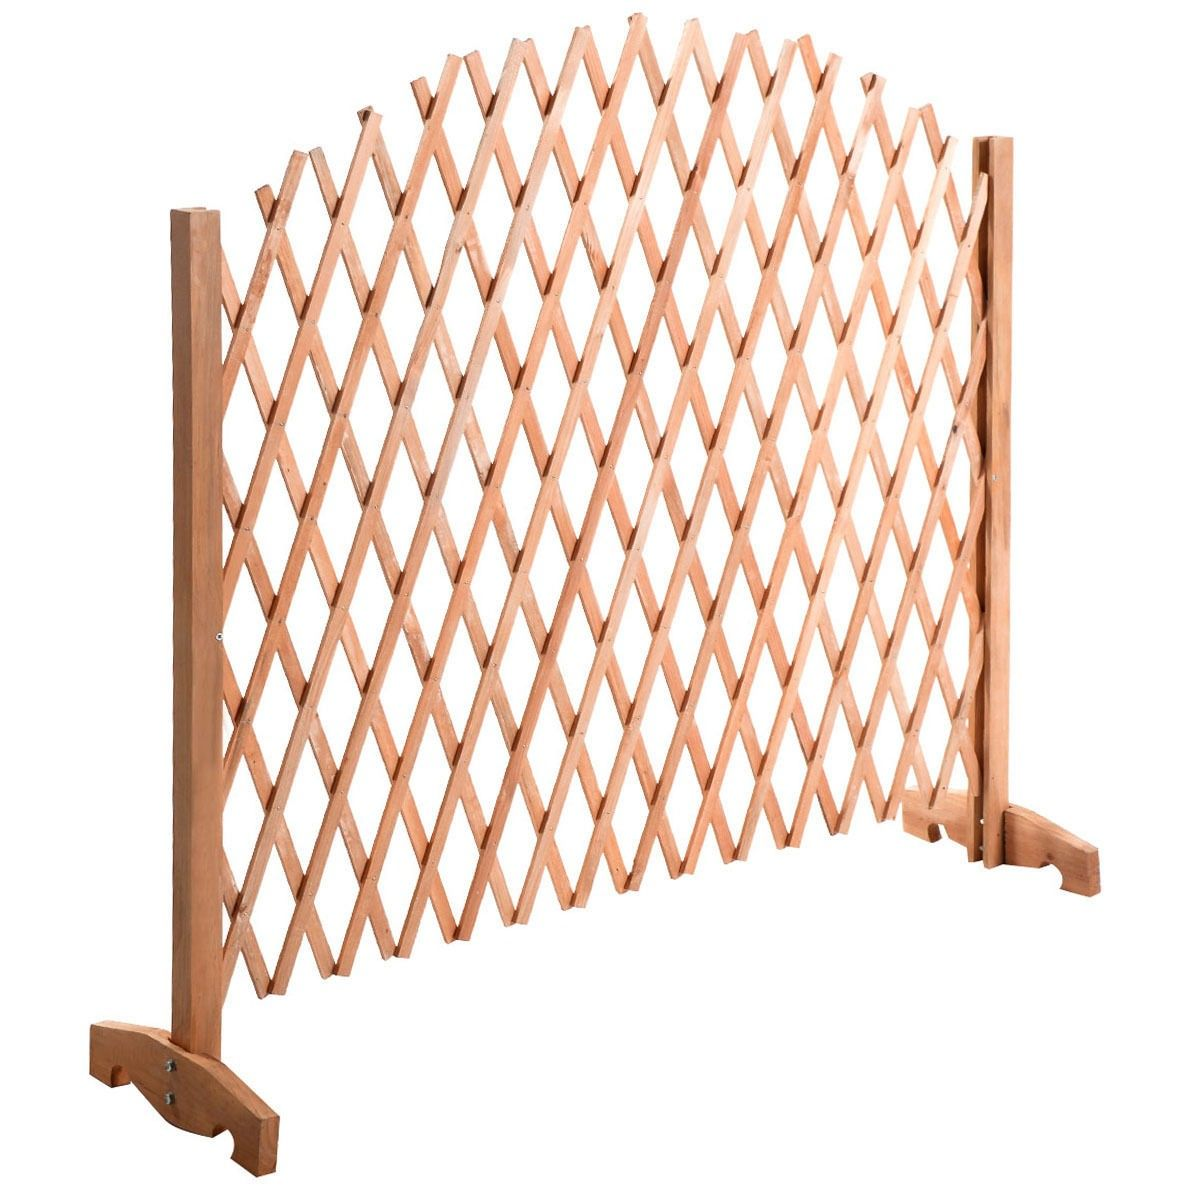 Expanding Portable Fence Wooden Screen Dog Gate Pet Safety Kid Patio Garden  Lawn   Fencing U0026